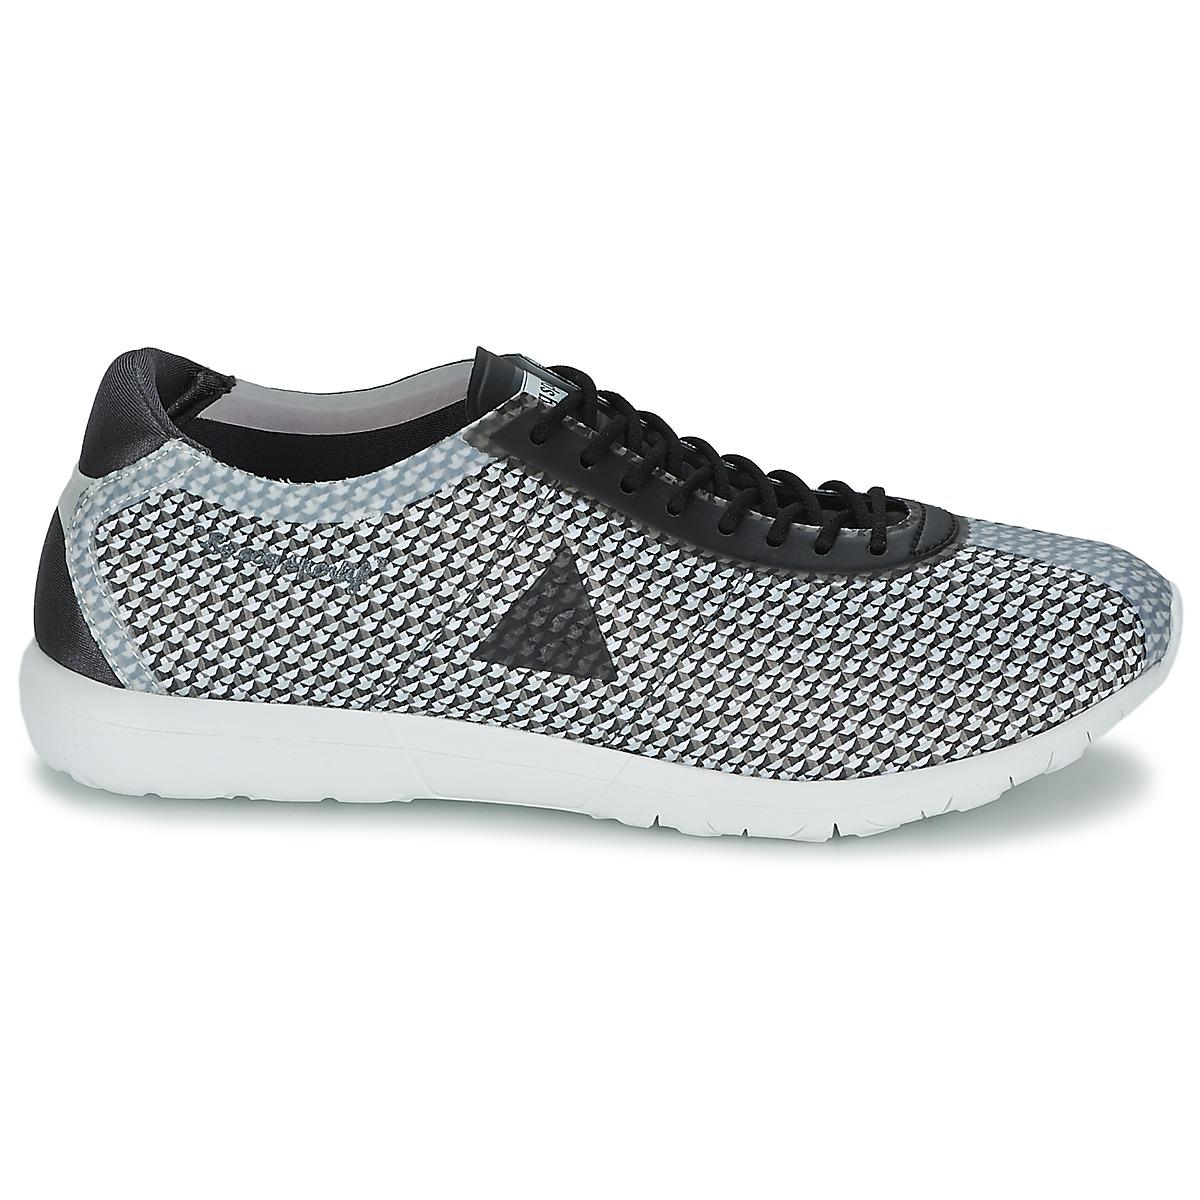 db25e0d49249 Le Coq Sportif Wendon Levity Geo Jacquard Shoes (trainers) in Gray ...